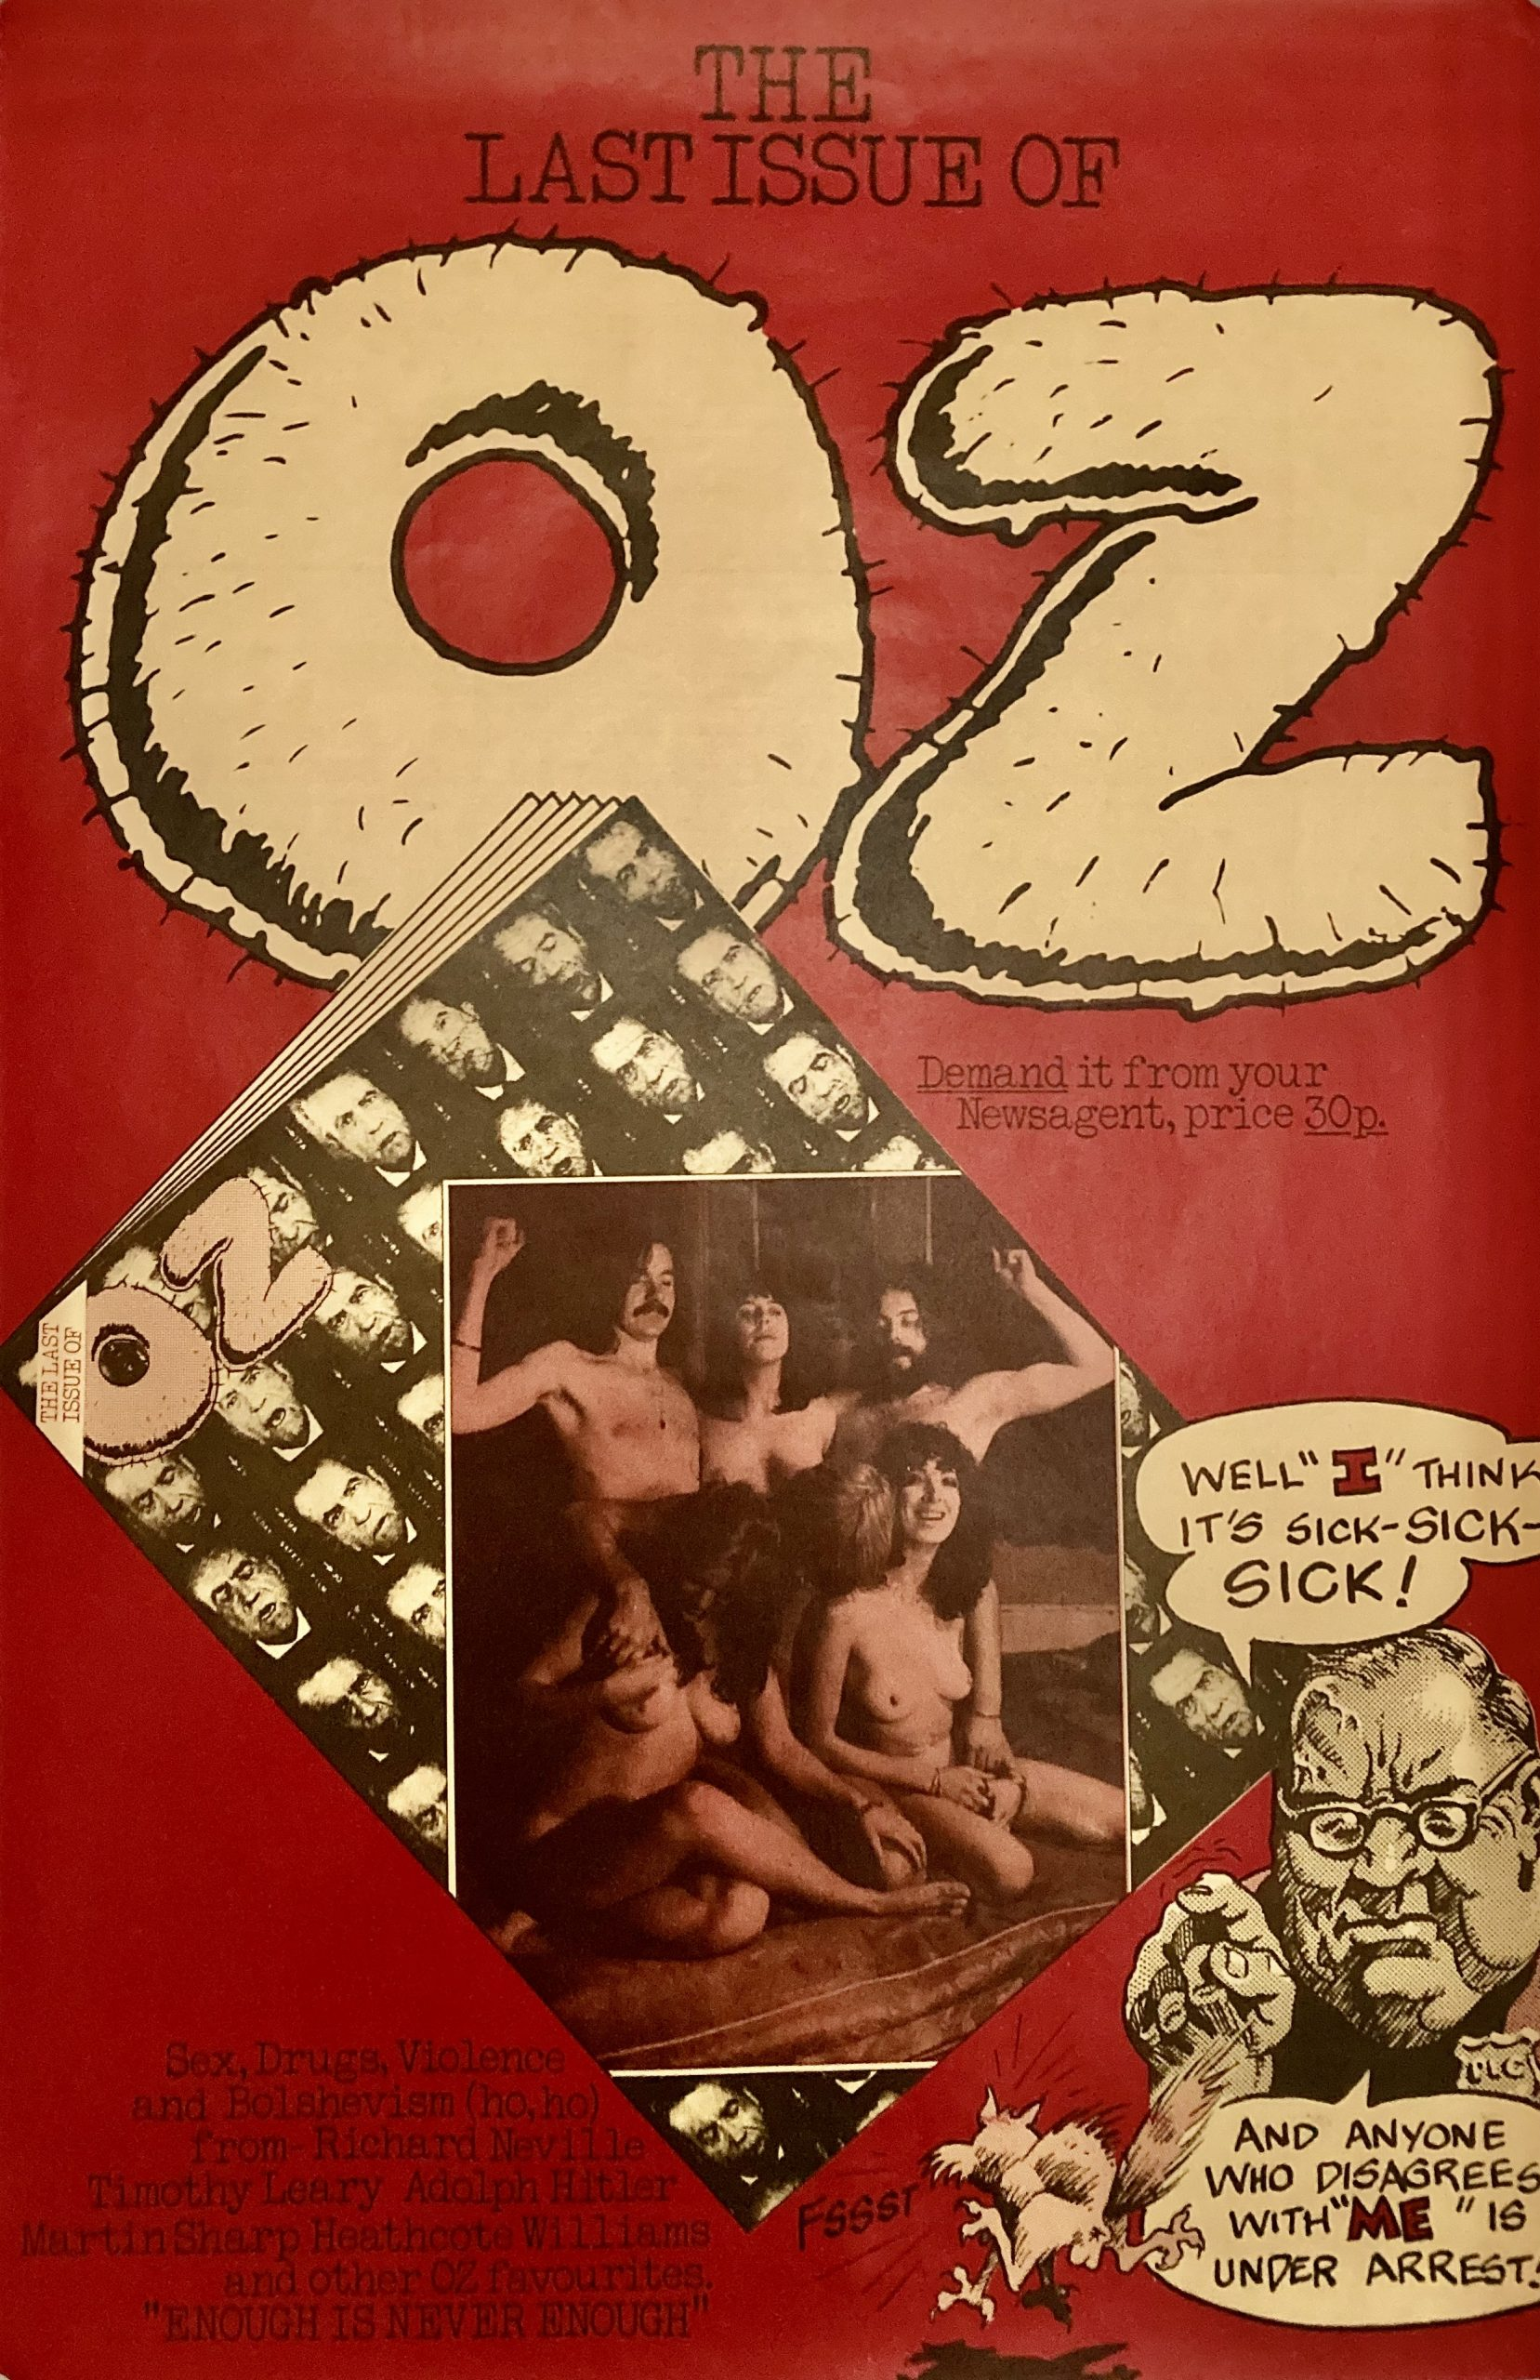 last issue of Oz magazine poster